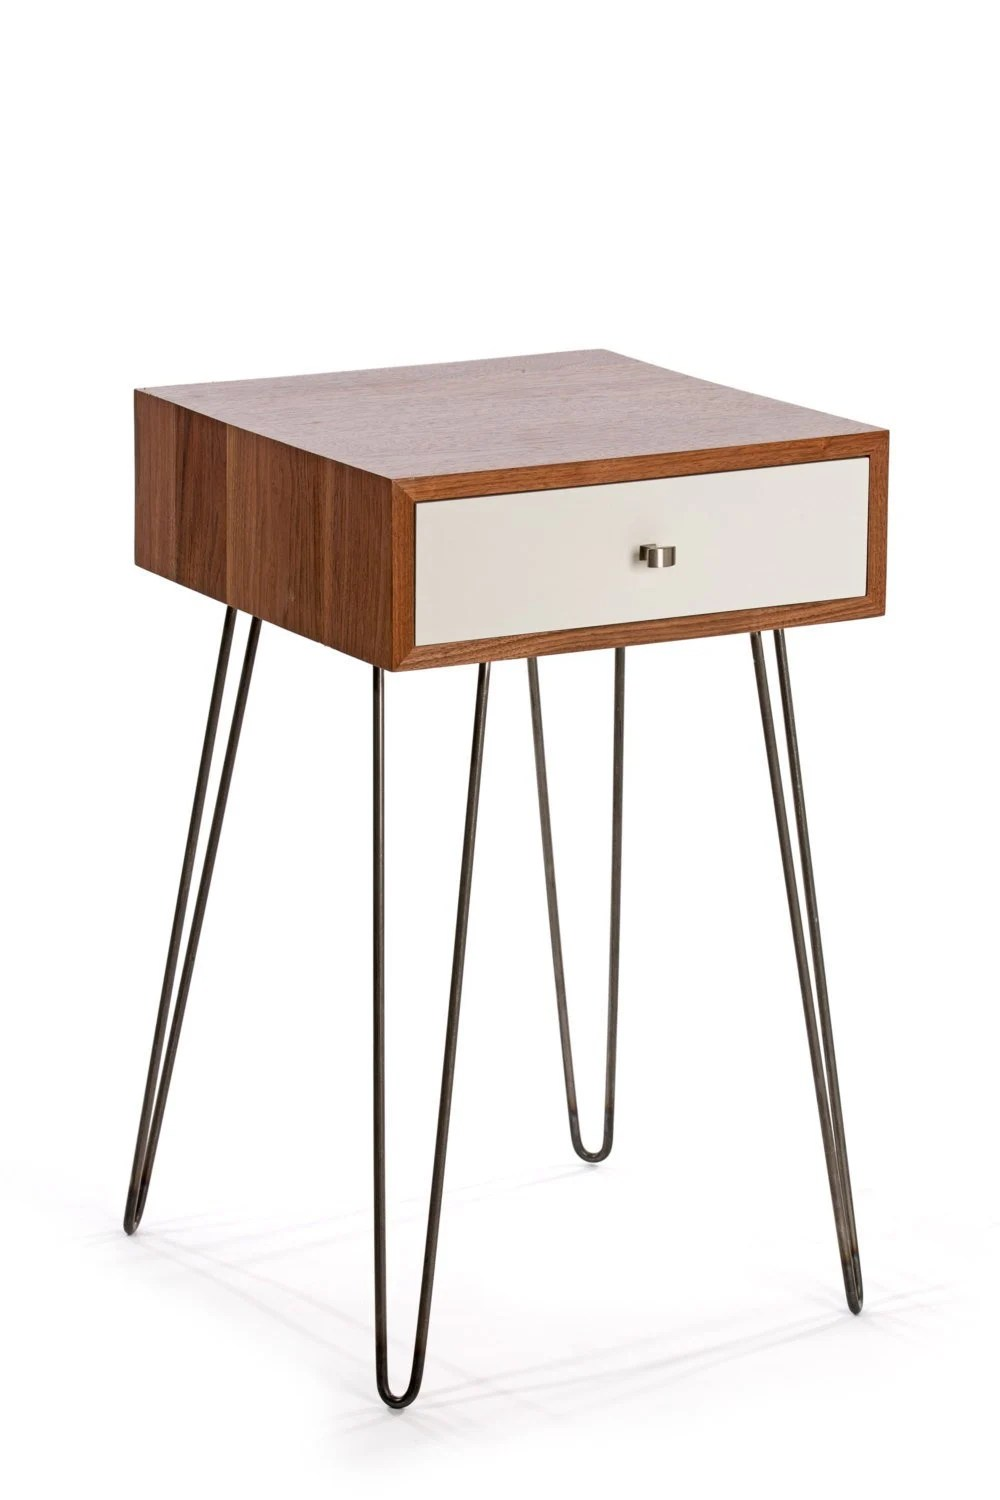 Newton Minimialist Nightstand Black Walnut Lacquer White Mid Century Industrial Chic Modern Side Table Bedside Table End Table Drawer